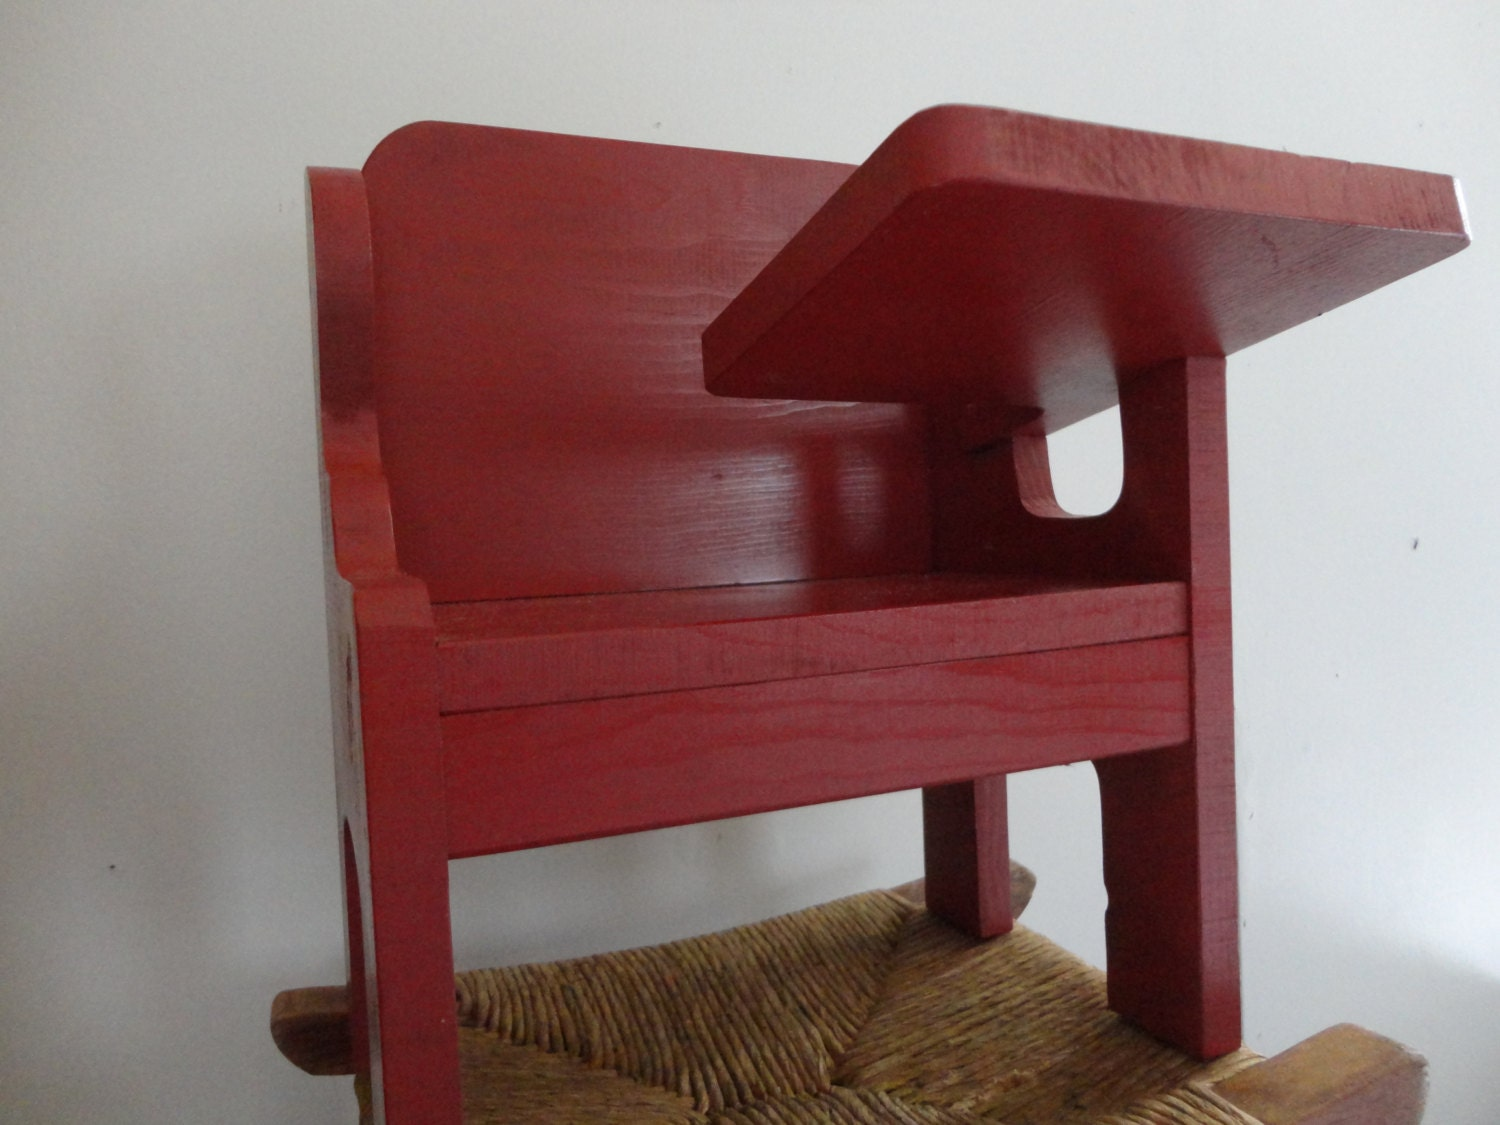 American Girl Size Wood Desk with Chair Wood Toy Desk for